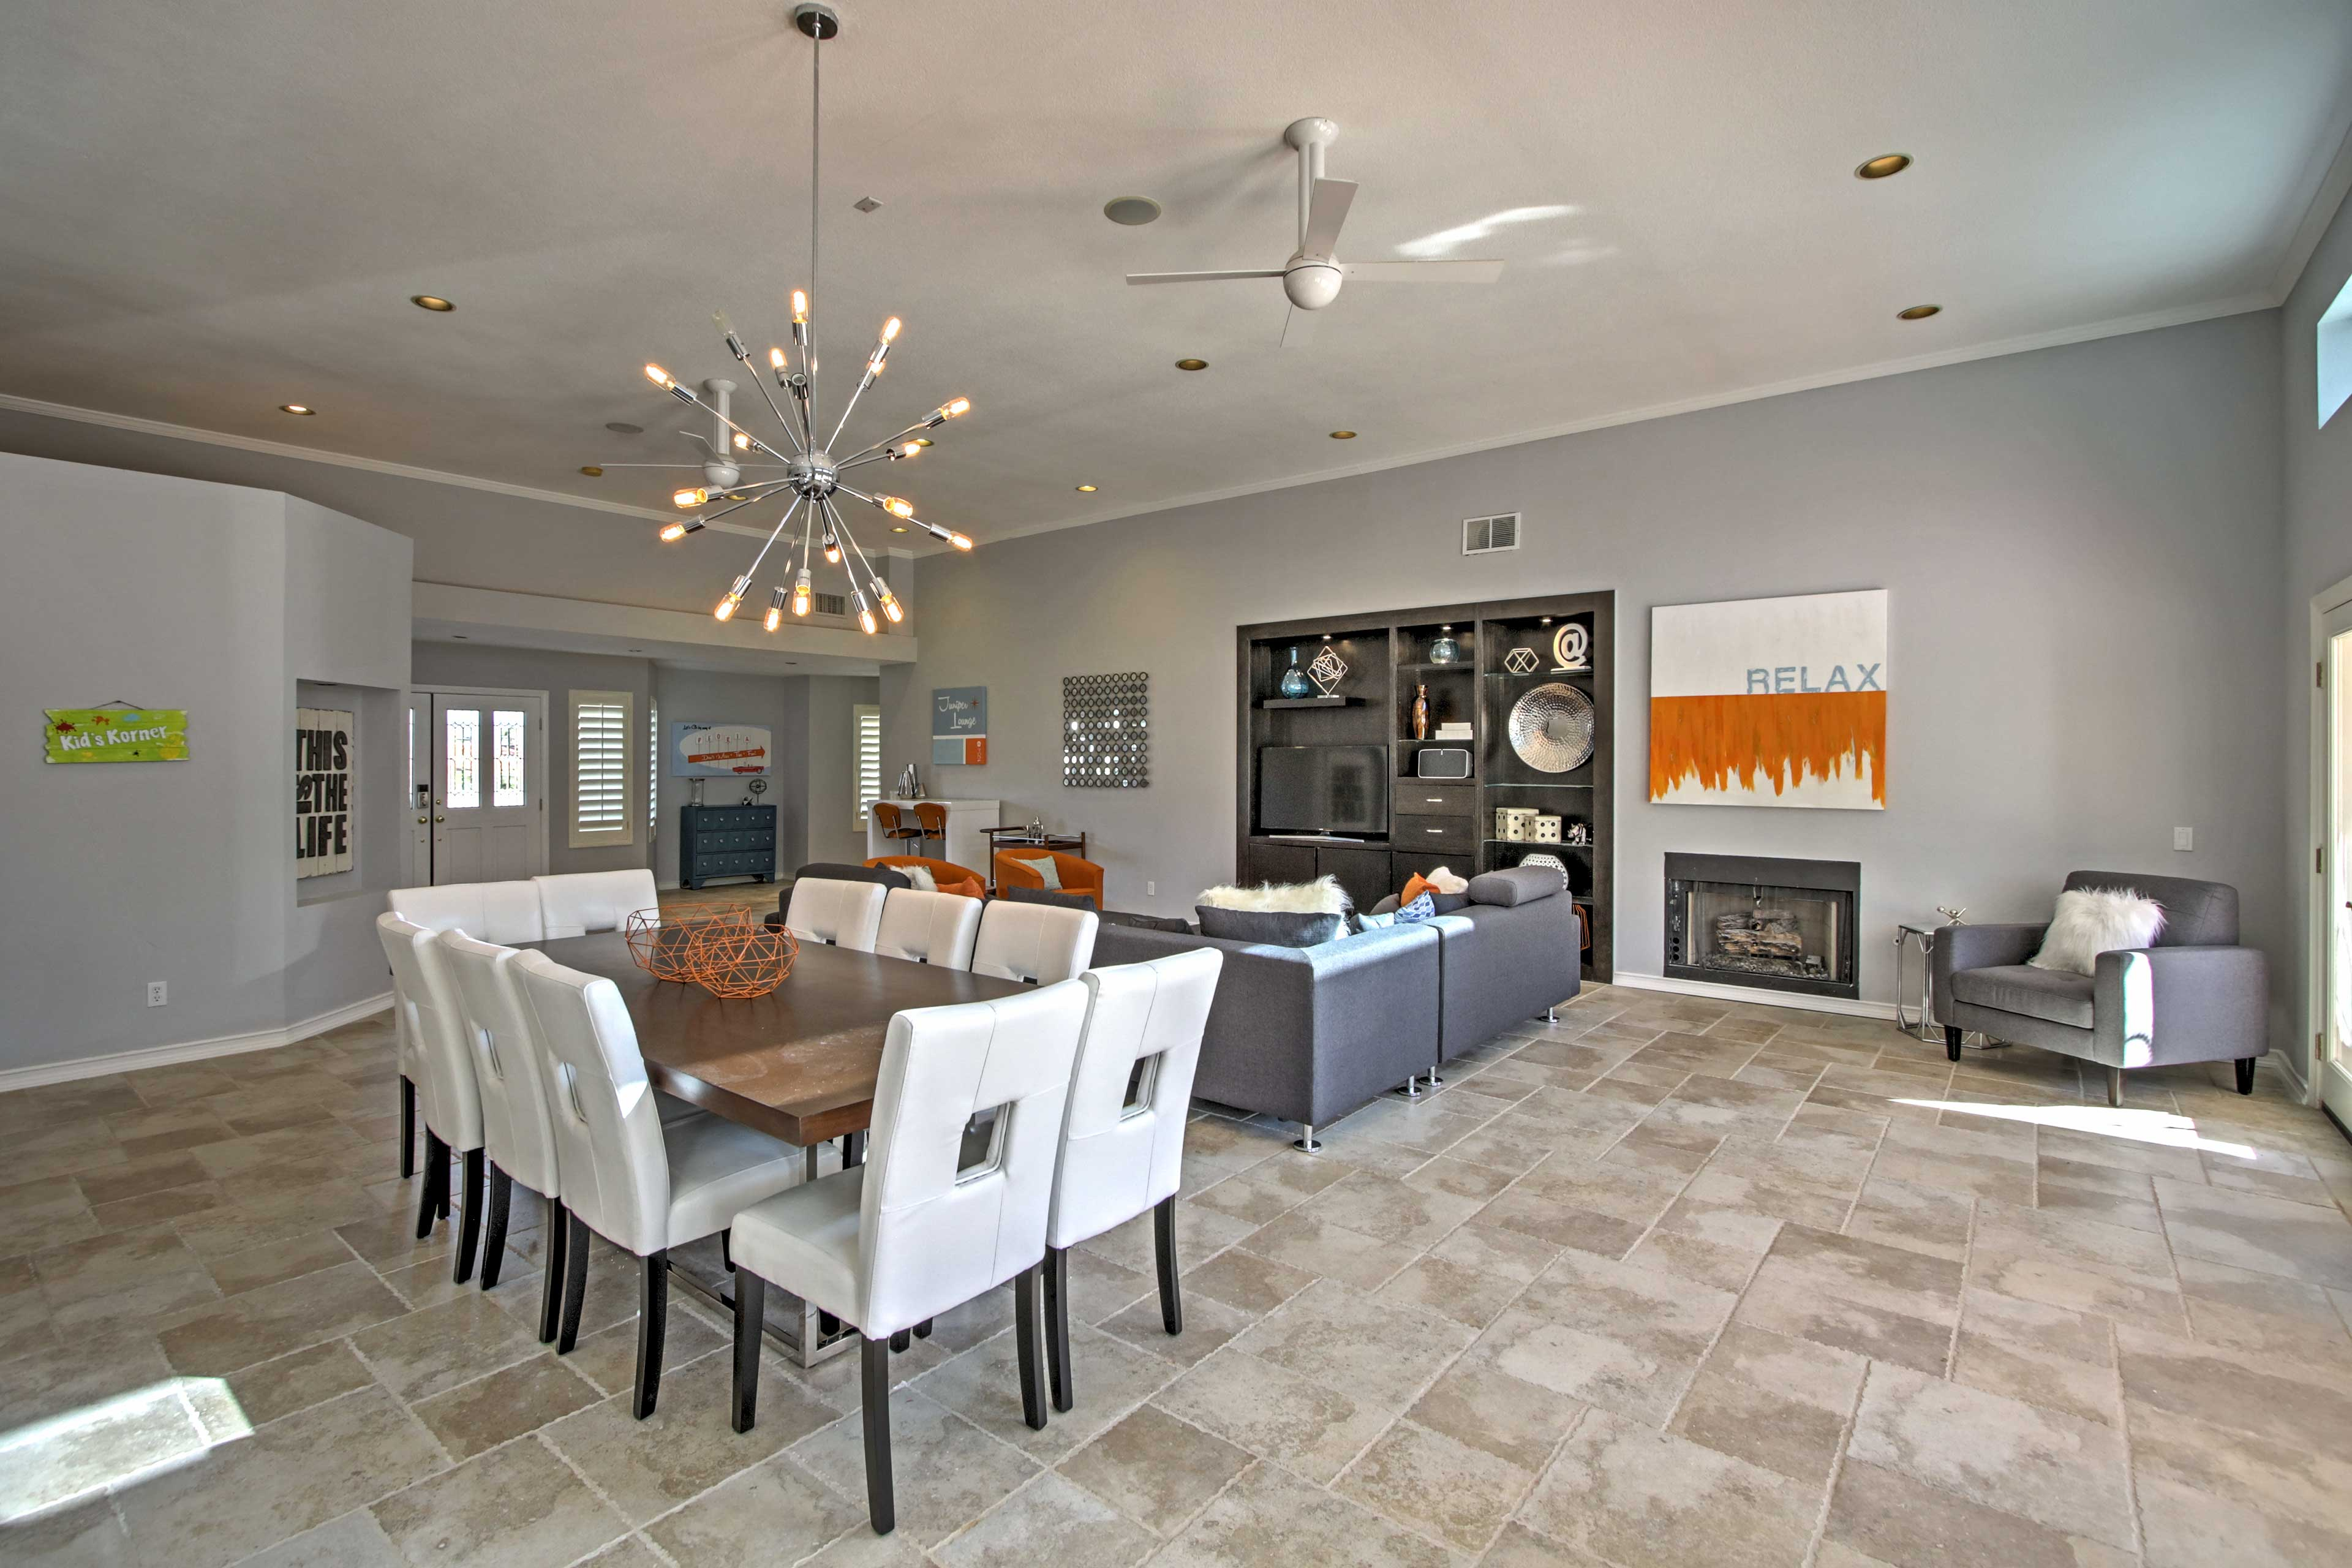 You'll love the spacious open-concept layout.